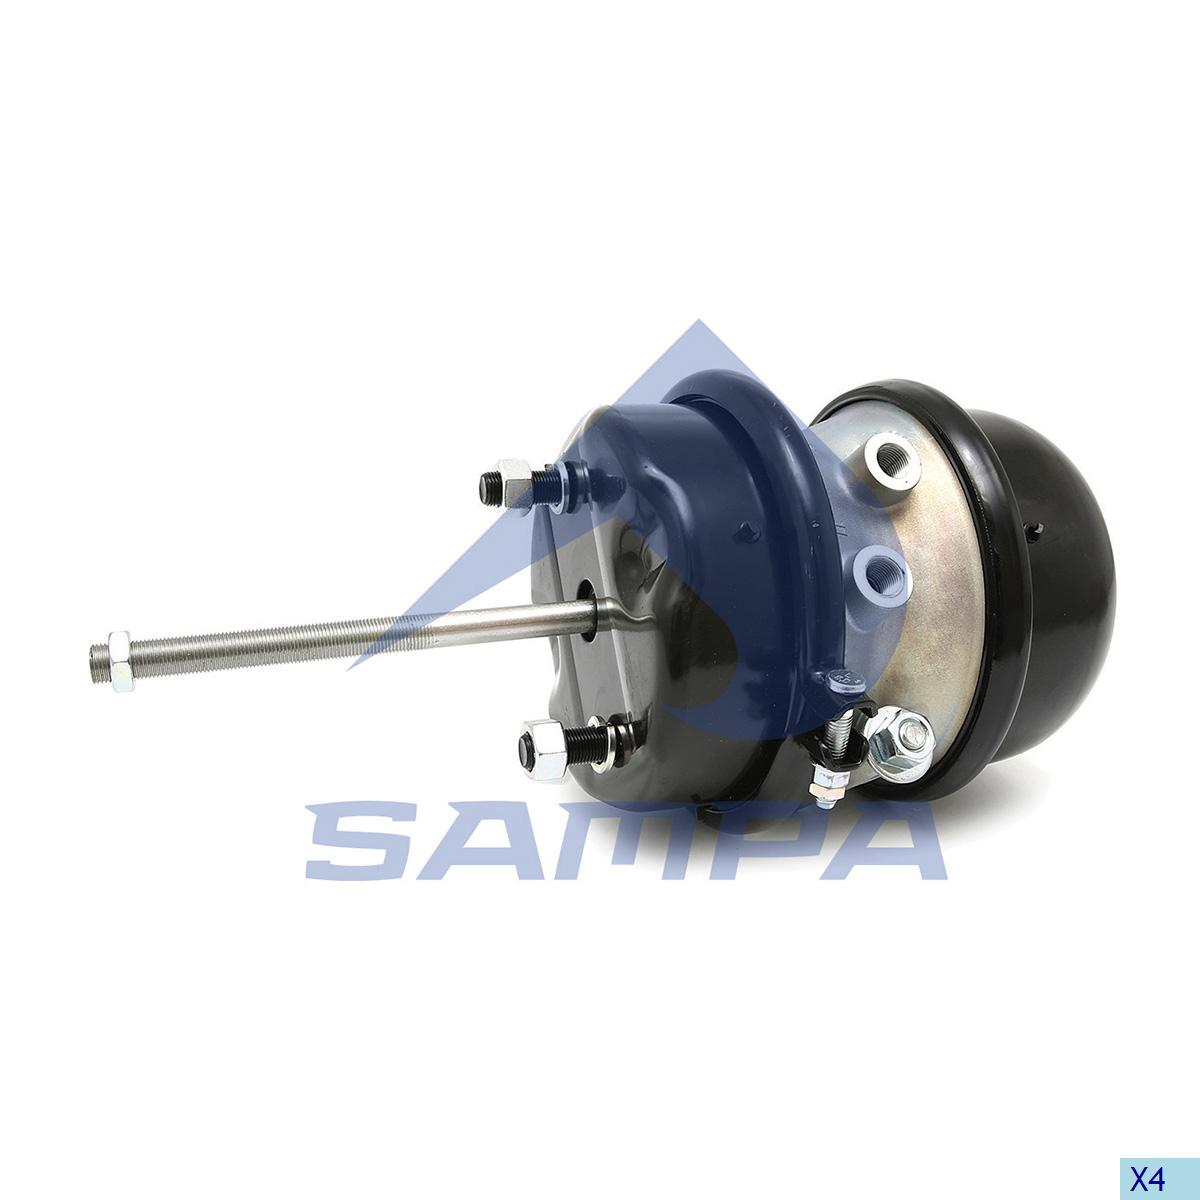 Double Diaphragm Brake Chamber, Daf, Brake